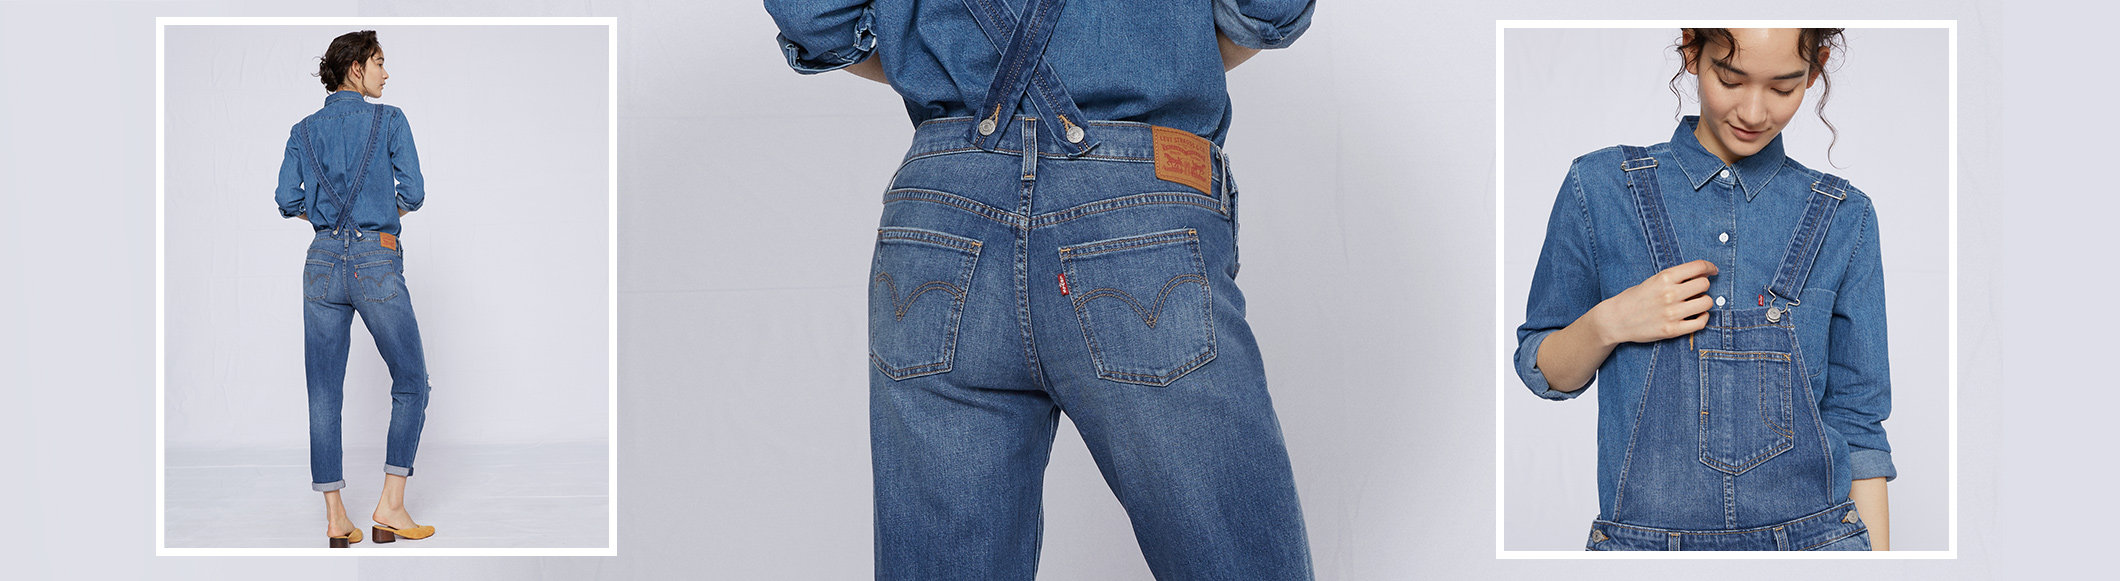 2e24b0e0047 Overalls - Shop Jean Overalls for Women